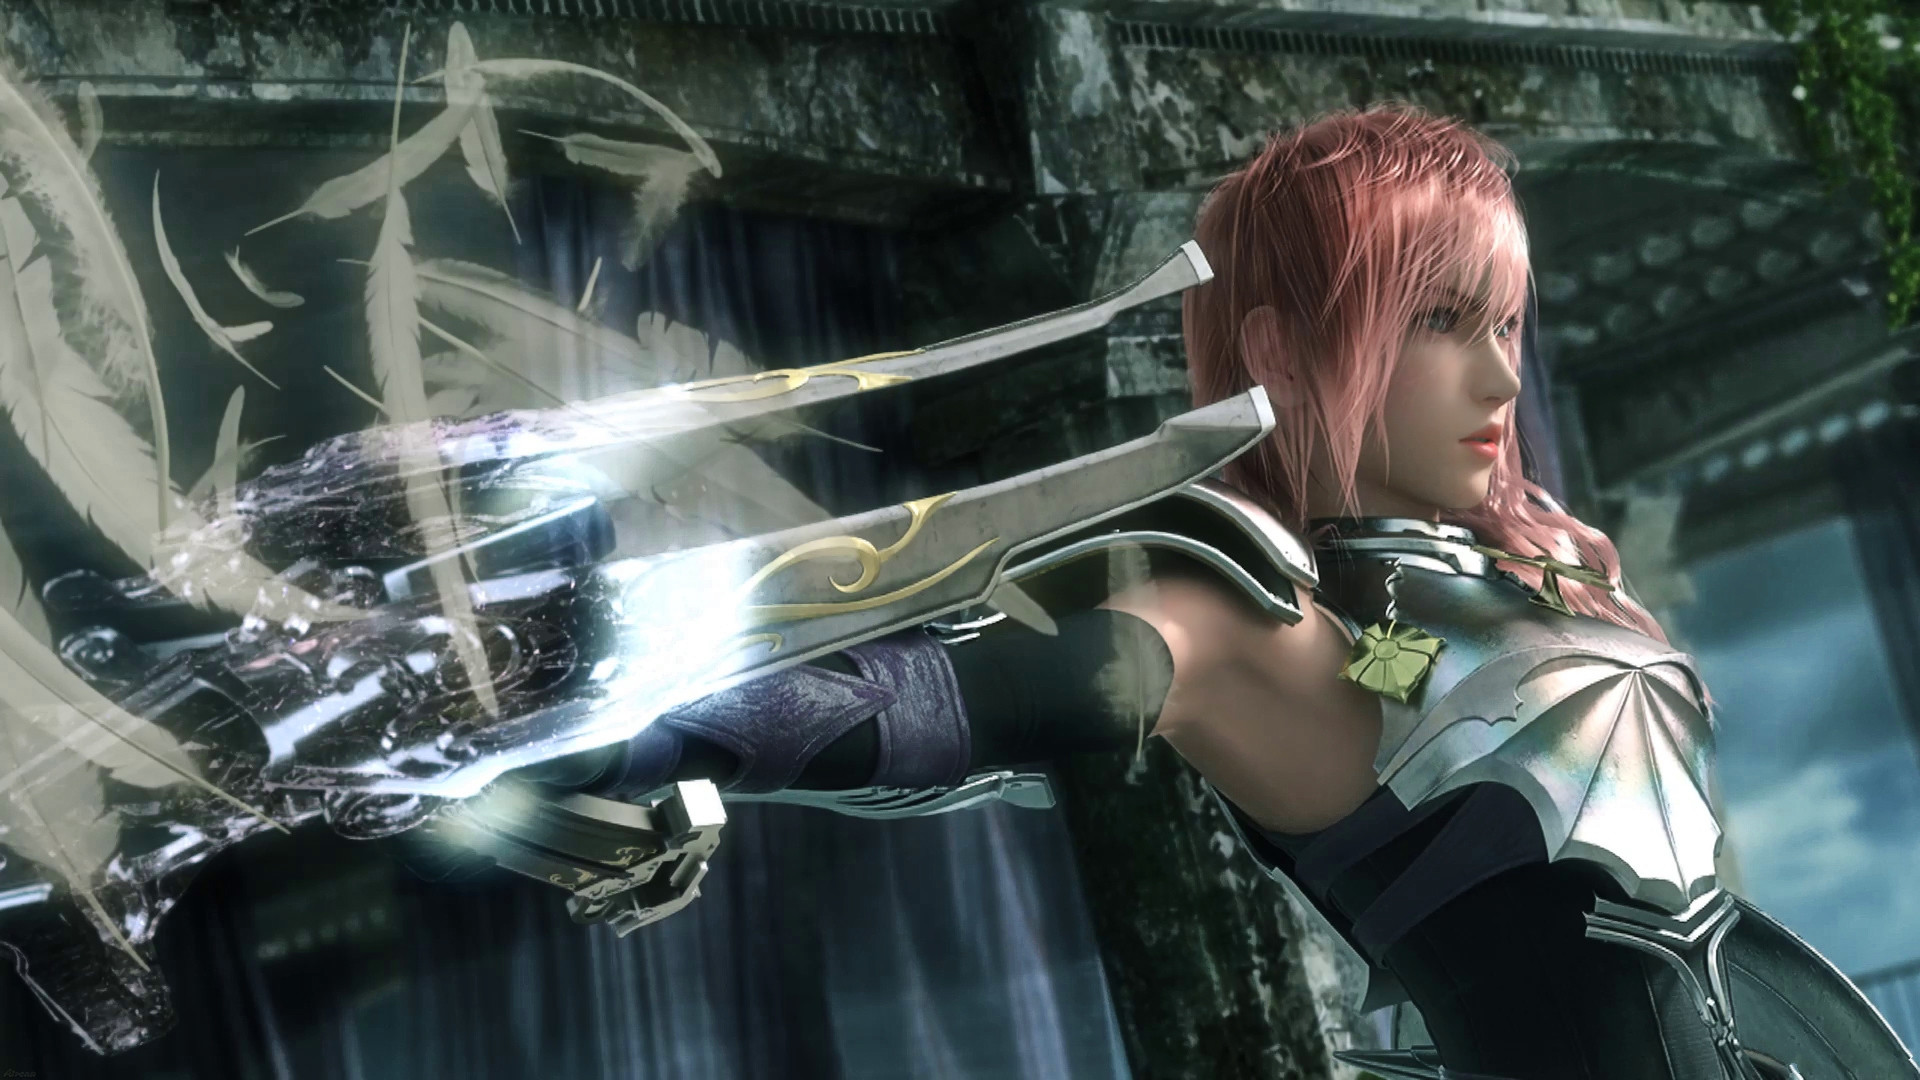 final fantasy lightning wallpaper hd (83+ images)